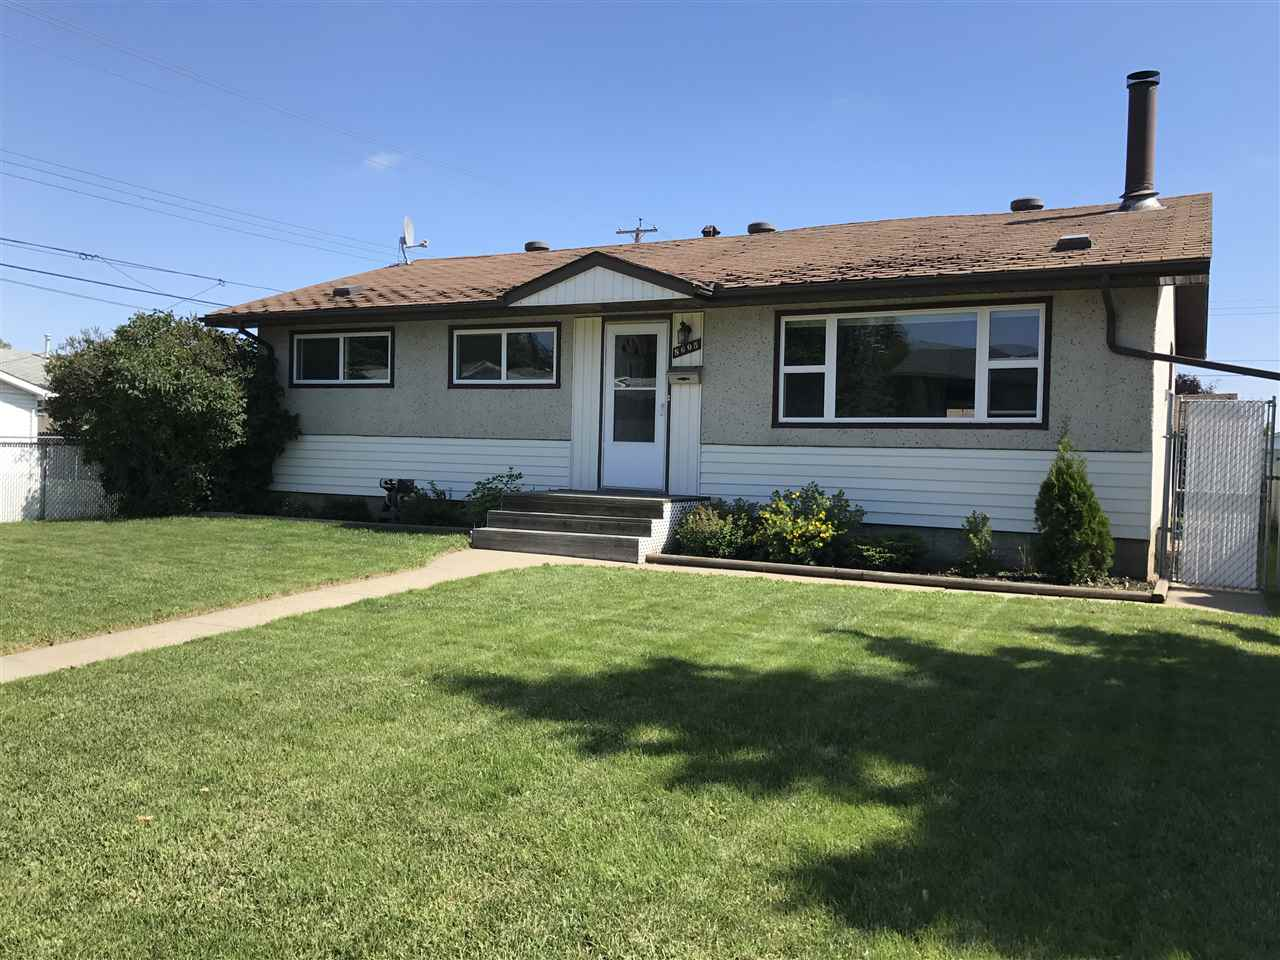 Main Photo: 8605 164 Street in Edmonton: Zone 22 House for sale : MLS® # E4076970